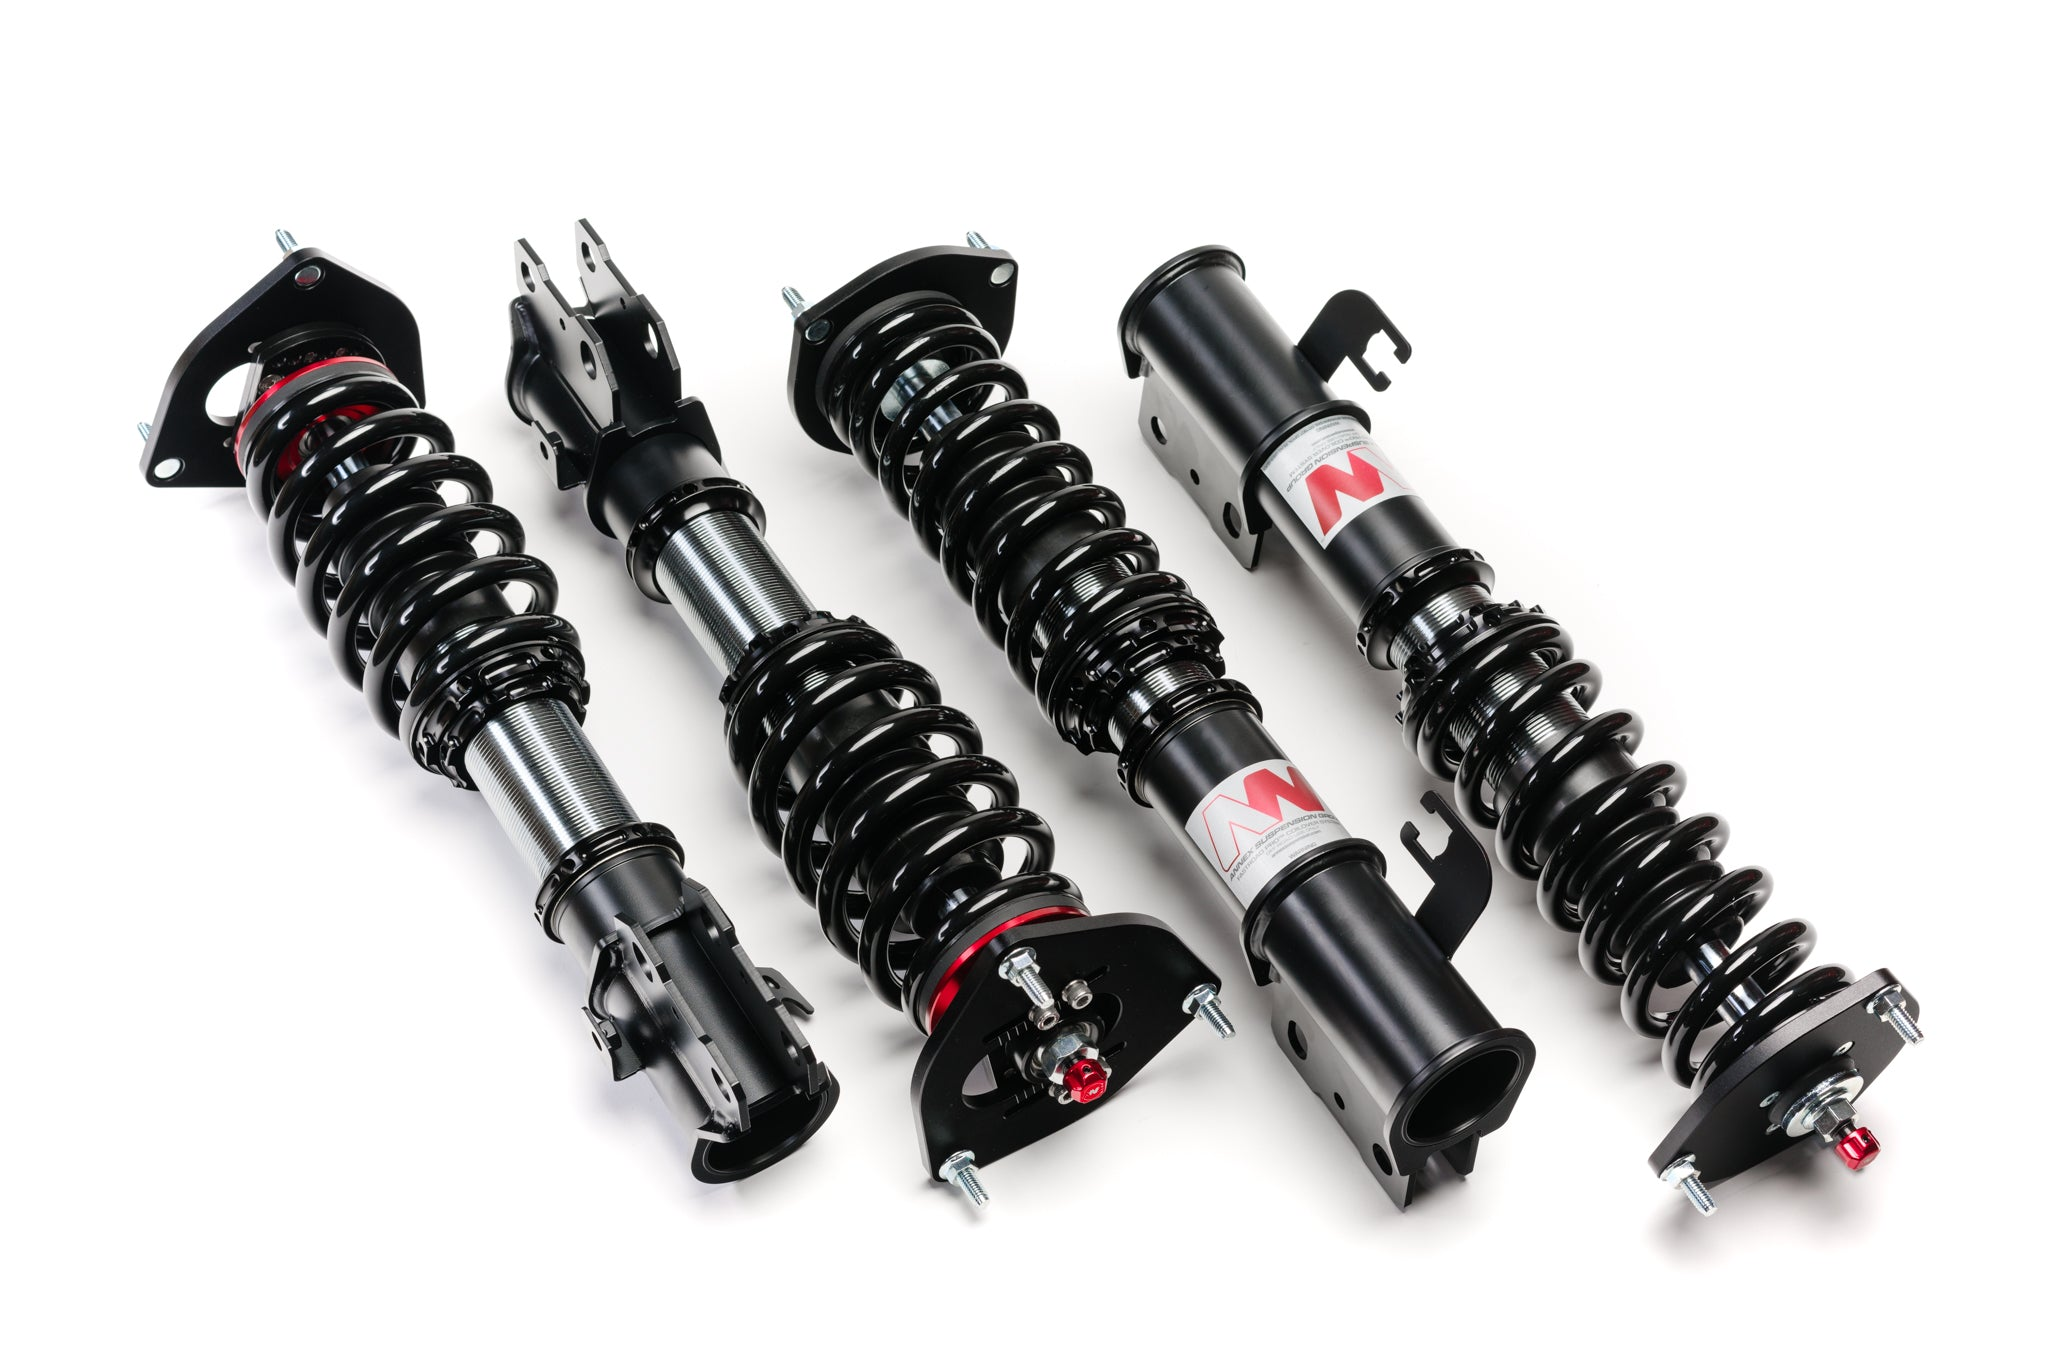 Annex Suspension Kits Fastroad Pro Coilovers Subaru 2002-2007 Impreza WRX for Daily Driving (Street Driving and Track Comfort)